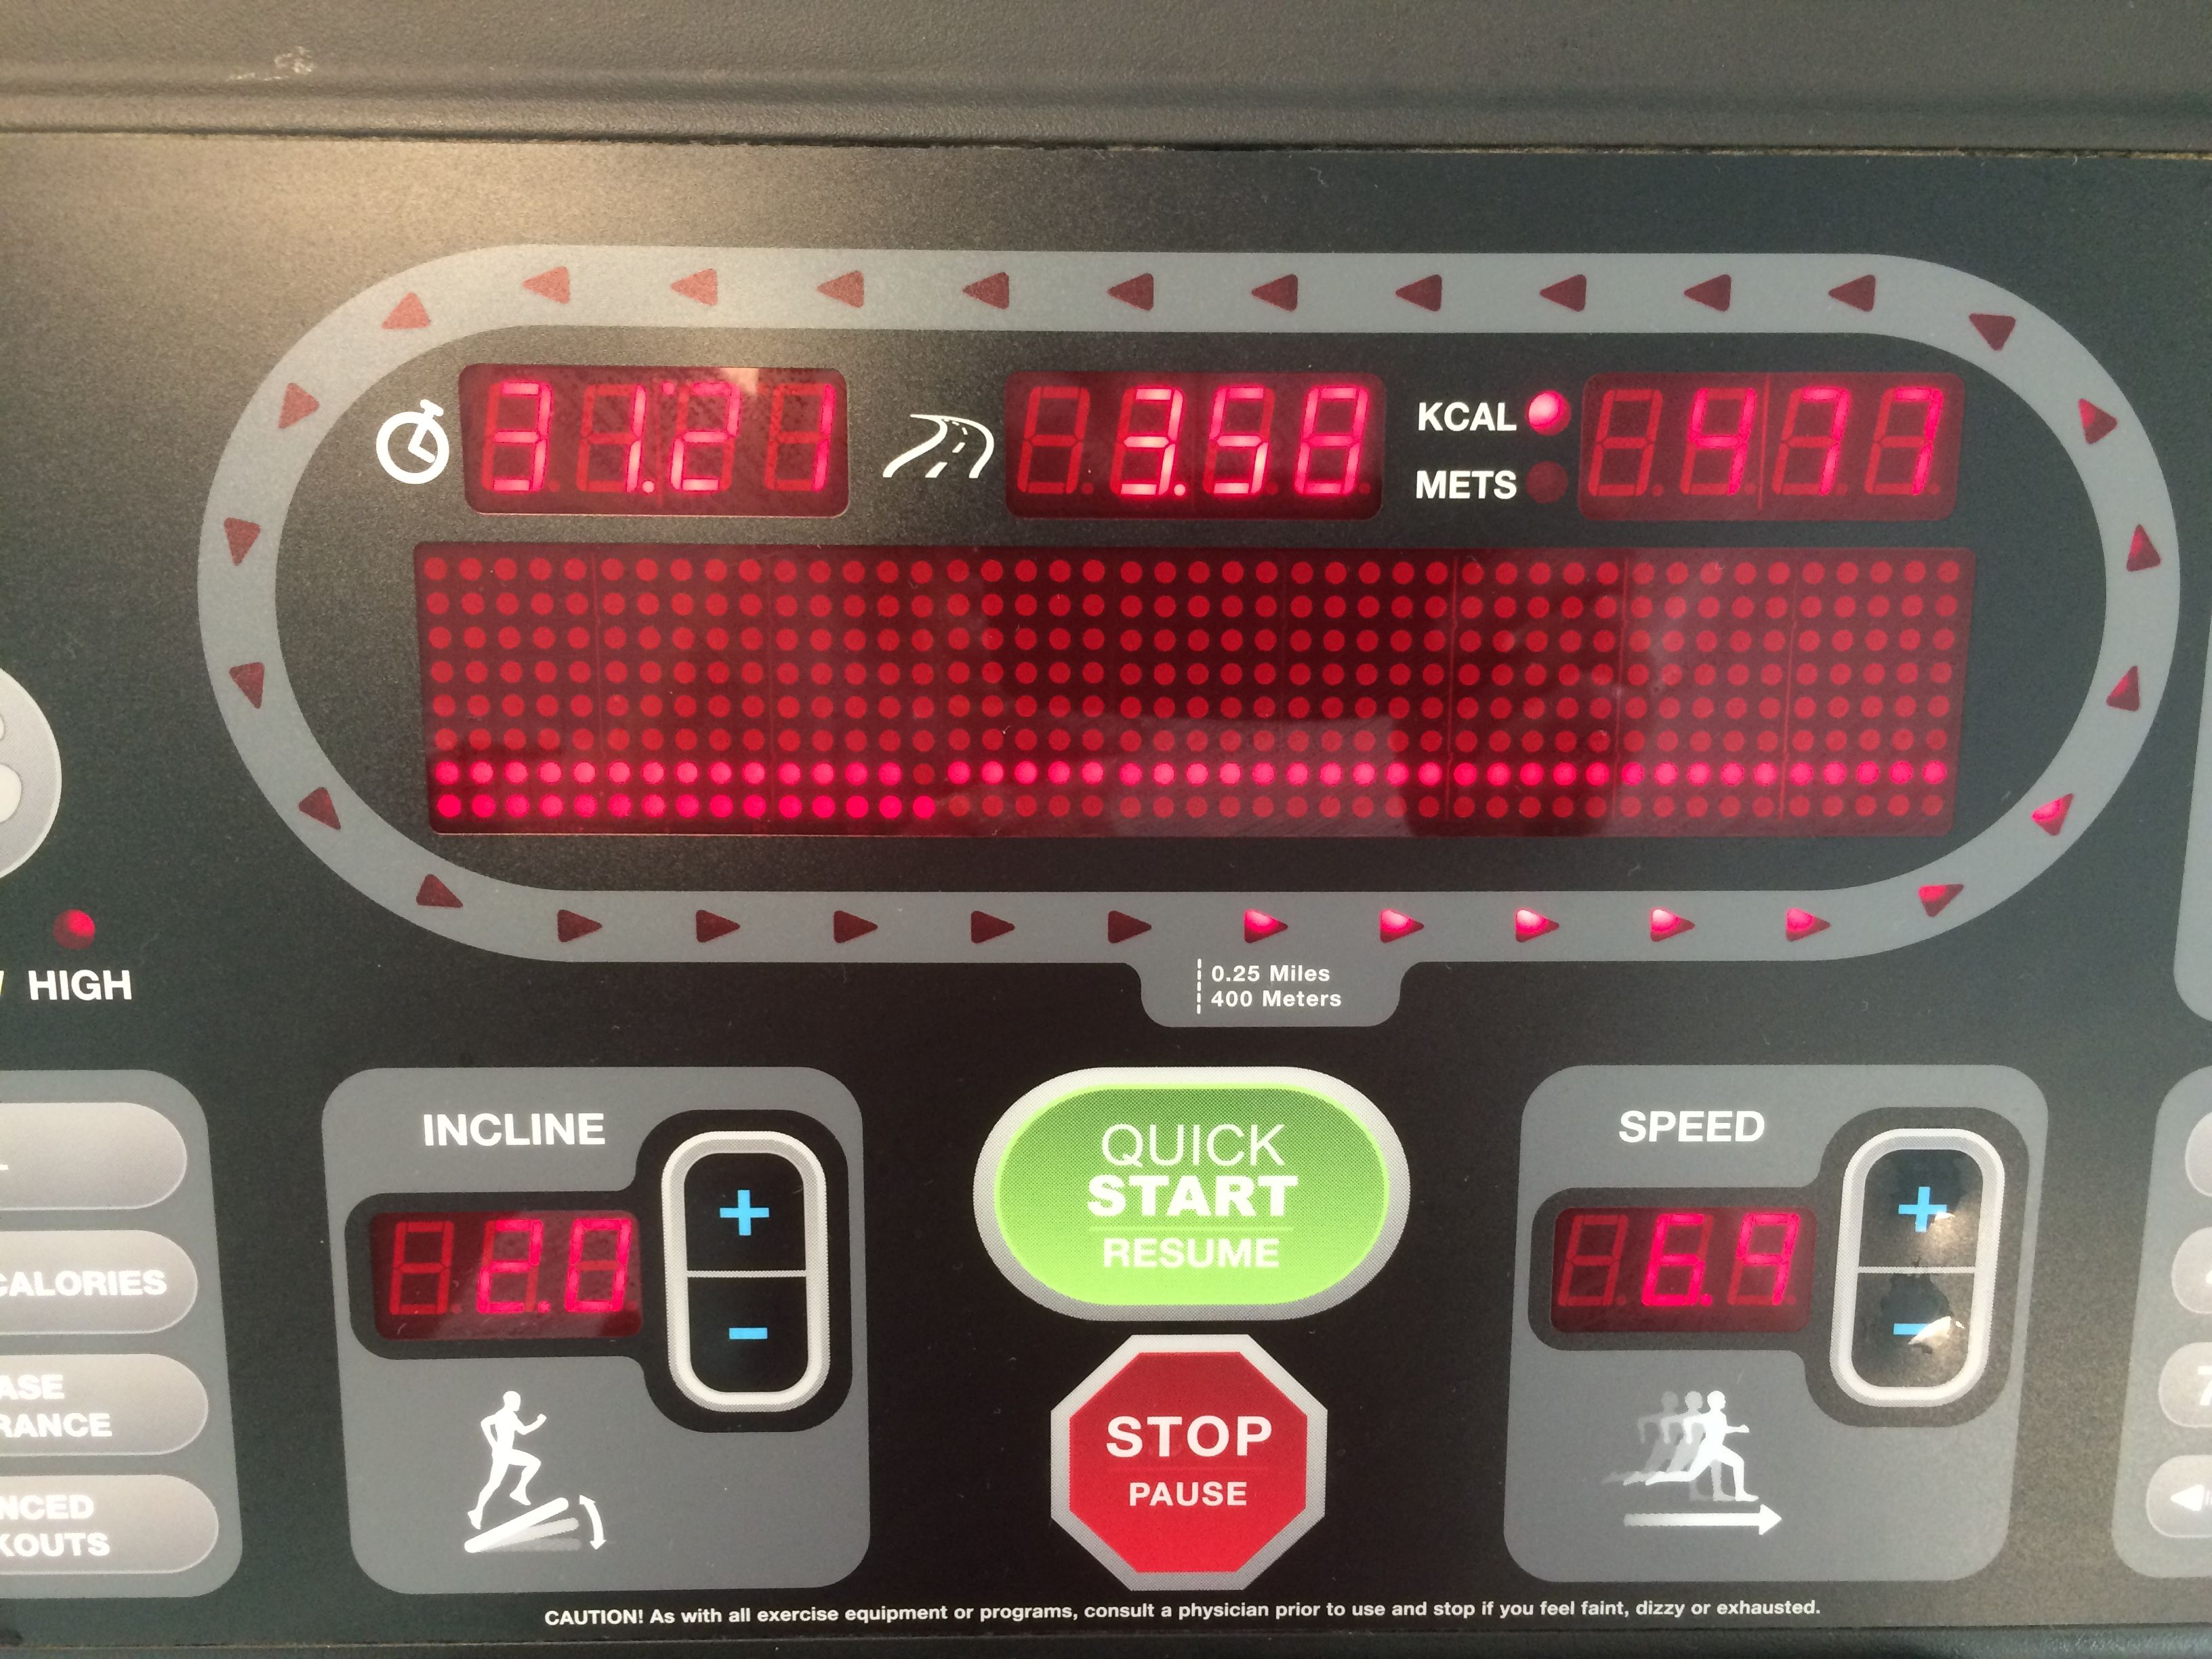 3 75 Mile Recovery Run 09 11 2015 Morning Running Miles Train